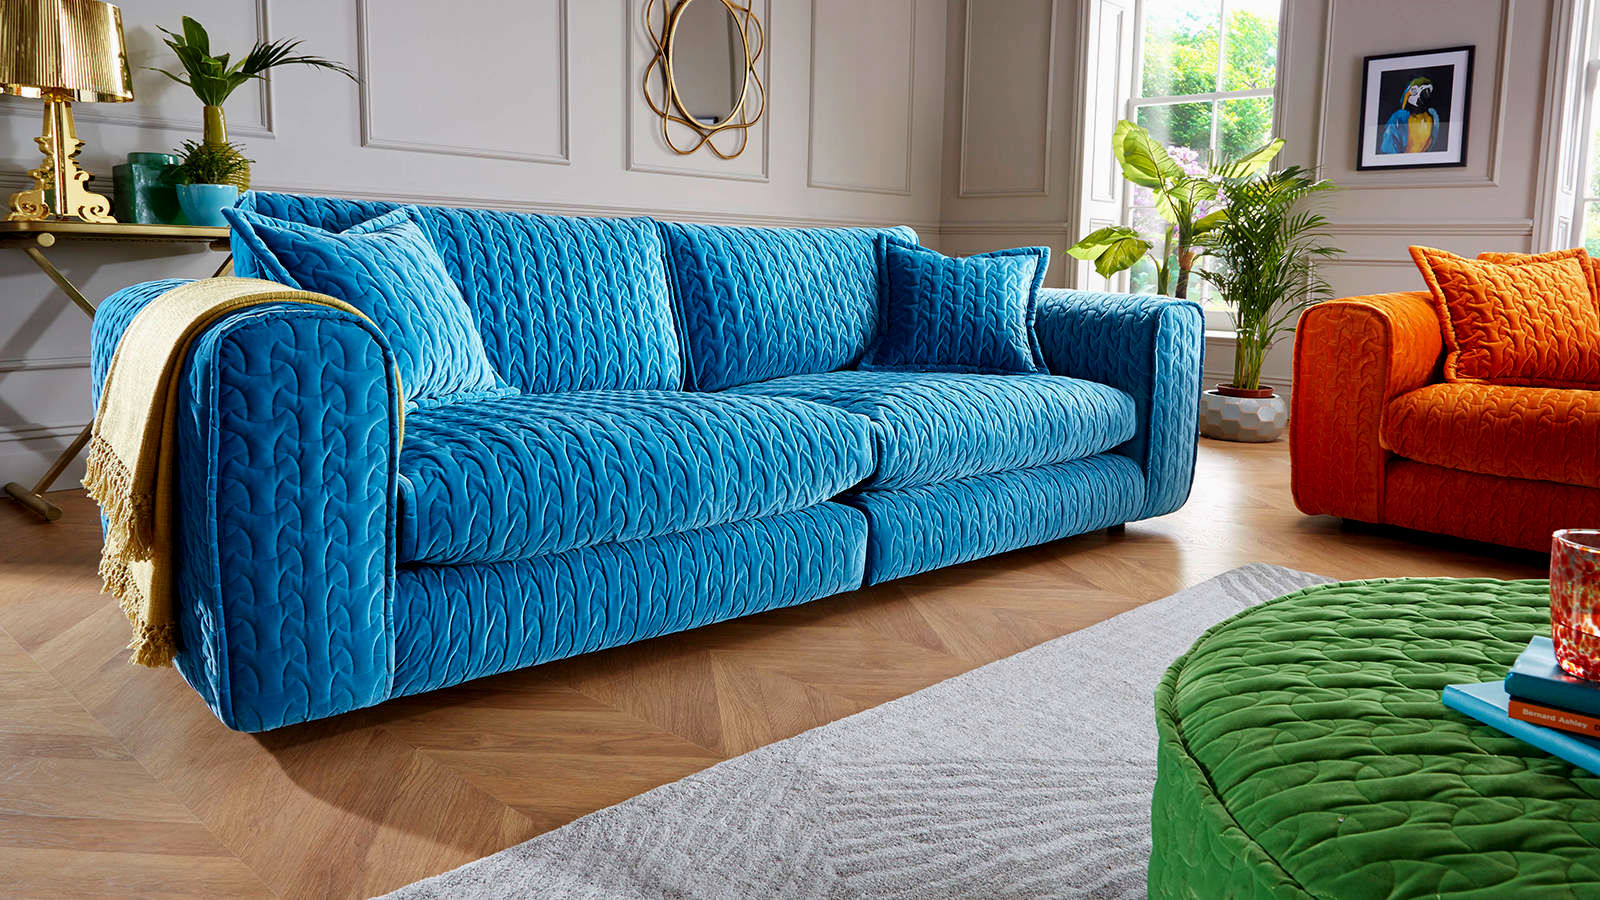 incredible sofas for less design-Terrific sofas for Less Gallery